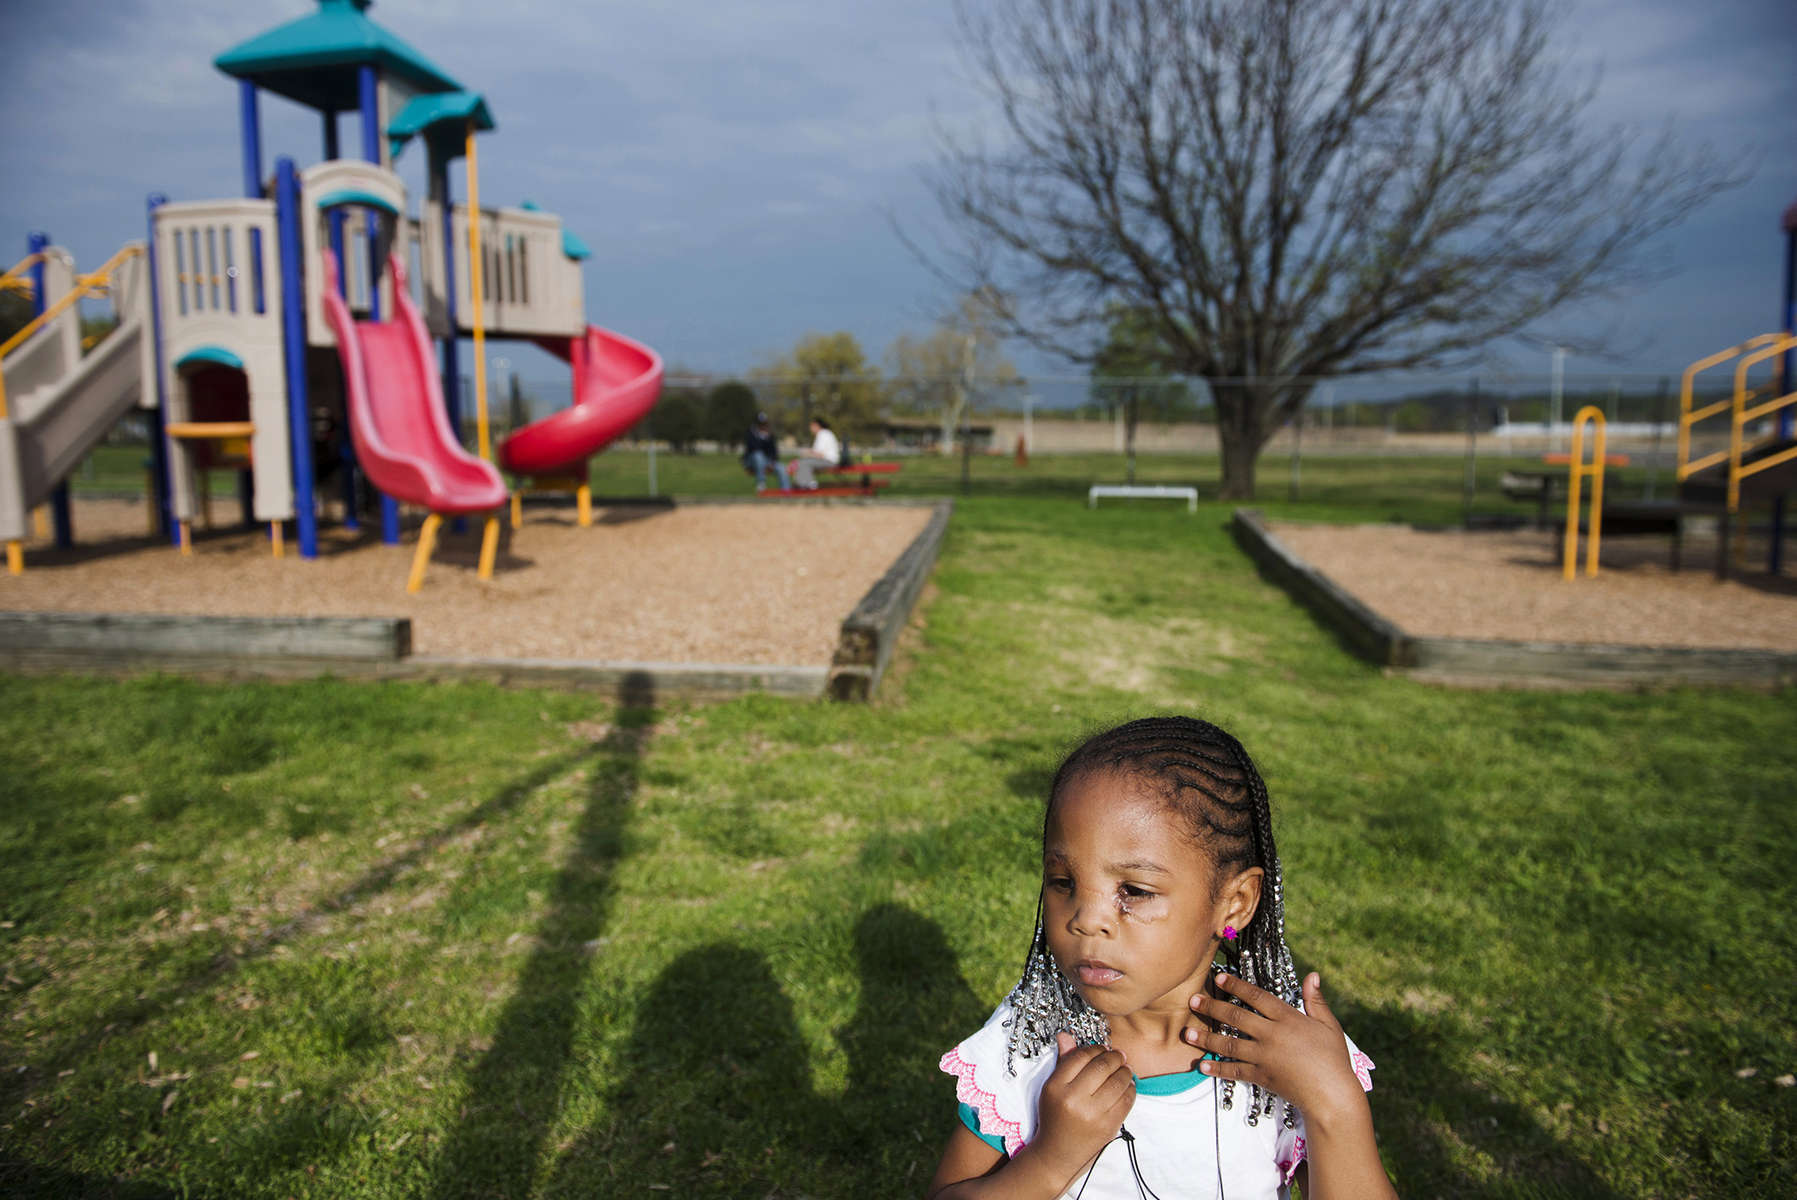 WASHINGTON, DC - APRIL 22: Kodie {quote}KoKo{quote} Brown plays  at the local playground near RFK stadium on Tuesday, April 22, 2014 in Washington, DC. {quote}For me, it's all about family right now. That's my main focus,{quote} said Ferguson, a DC police officer, who with his wife adopted {quote}KoKo{quote} after their daughter was fatally shot on a DC Metro Bus while trying to run from her boyfriend. {quote}KoKo{quote} was also seriously injured during the incident, suffering a gunshot wound to the face.   (Photo by Amanda Voisard/For the Washington Post)